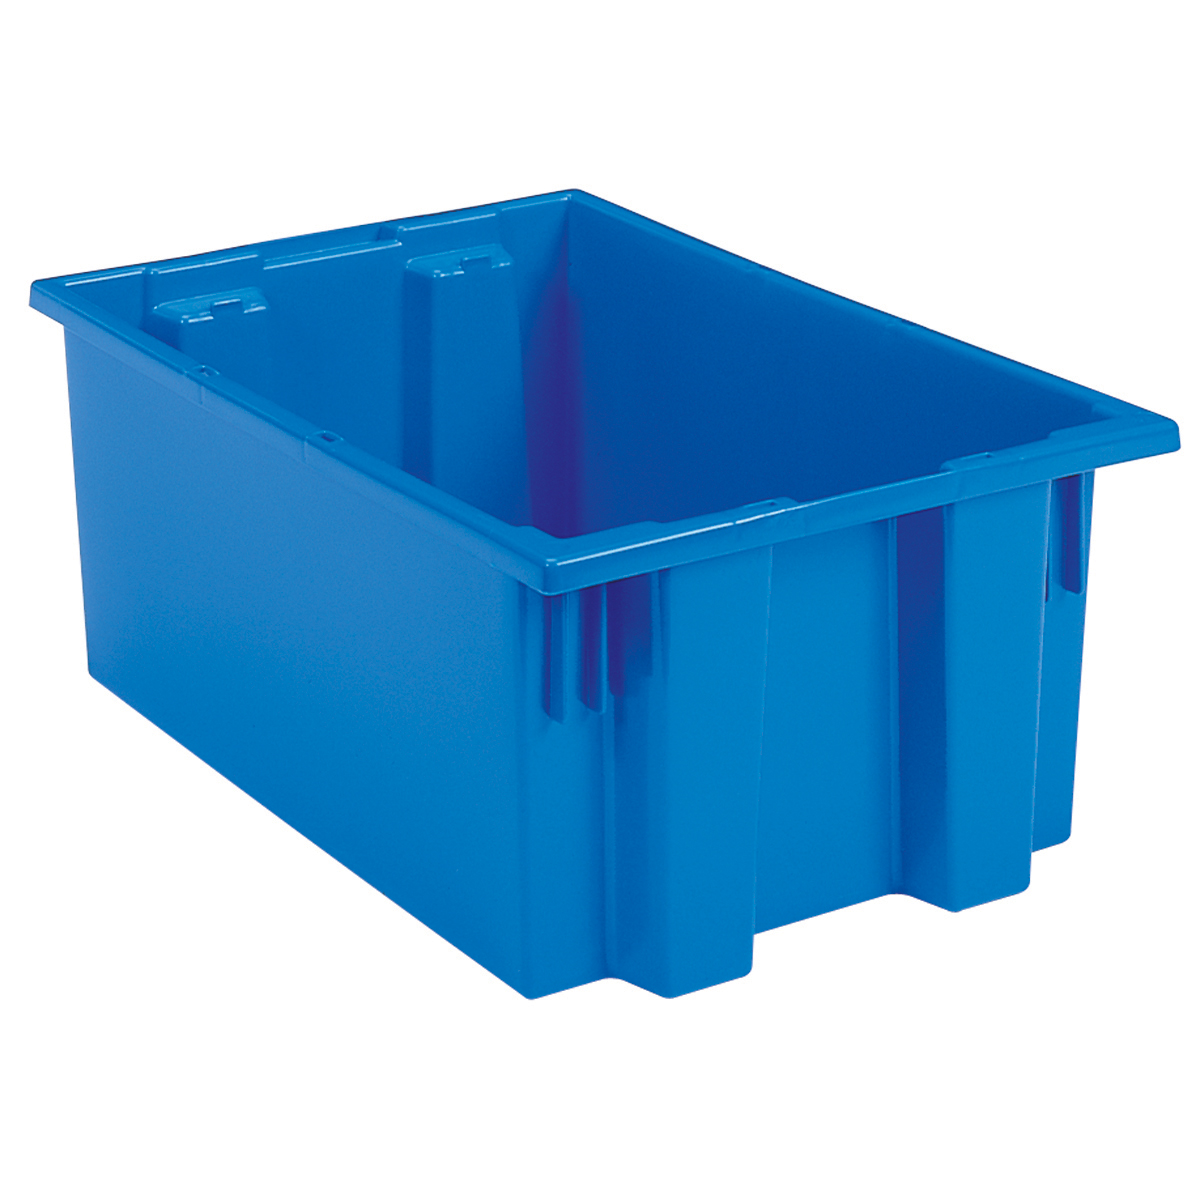 Nest & Stack Tote 19-1/2 x 15-1/2 x 10, Blue (35190BLUE).  This item sold in carton quantities of 6.